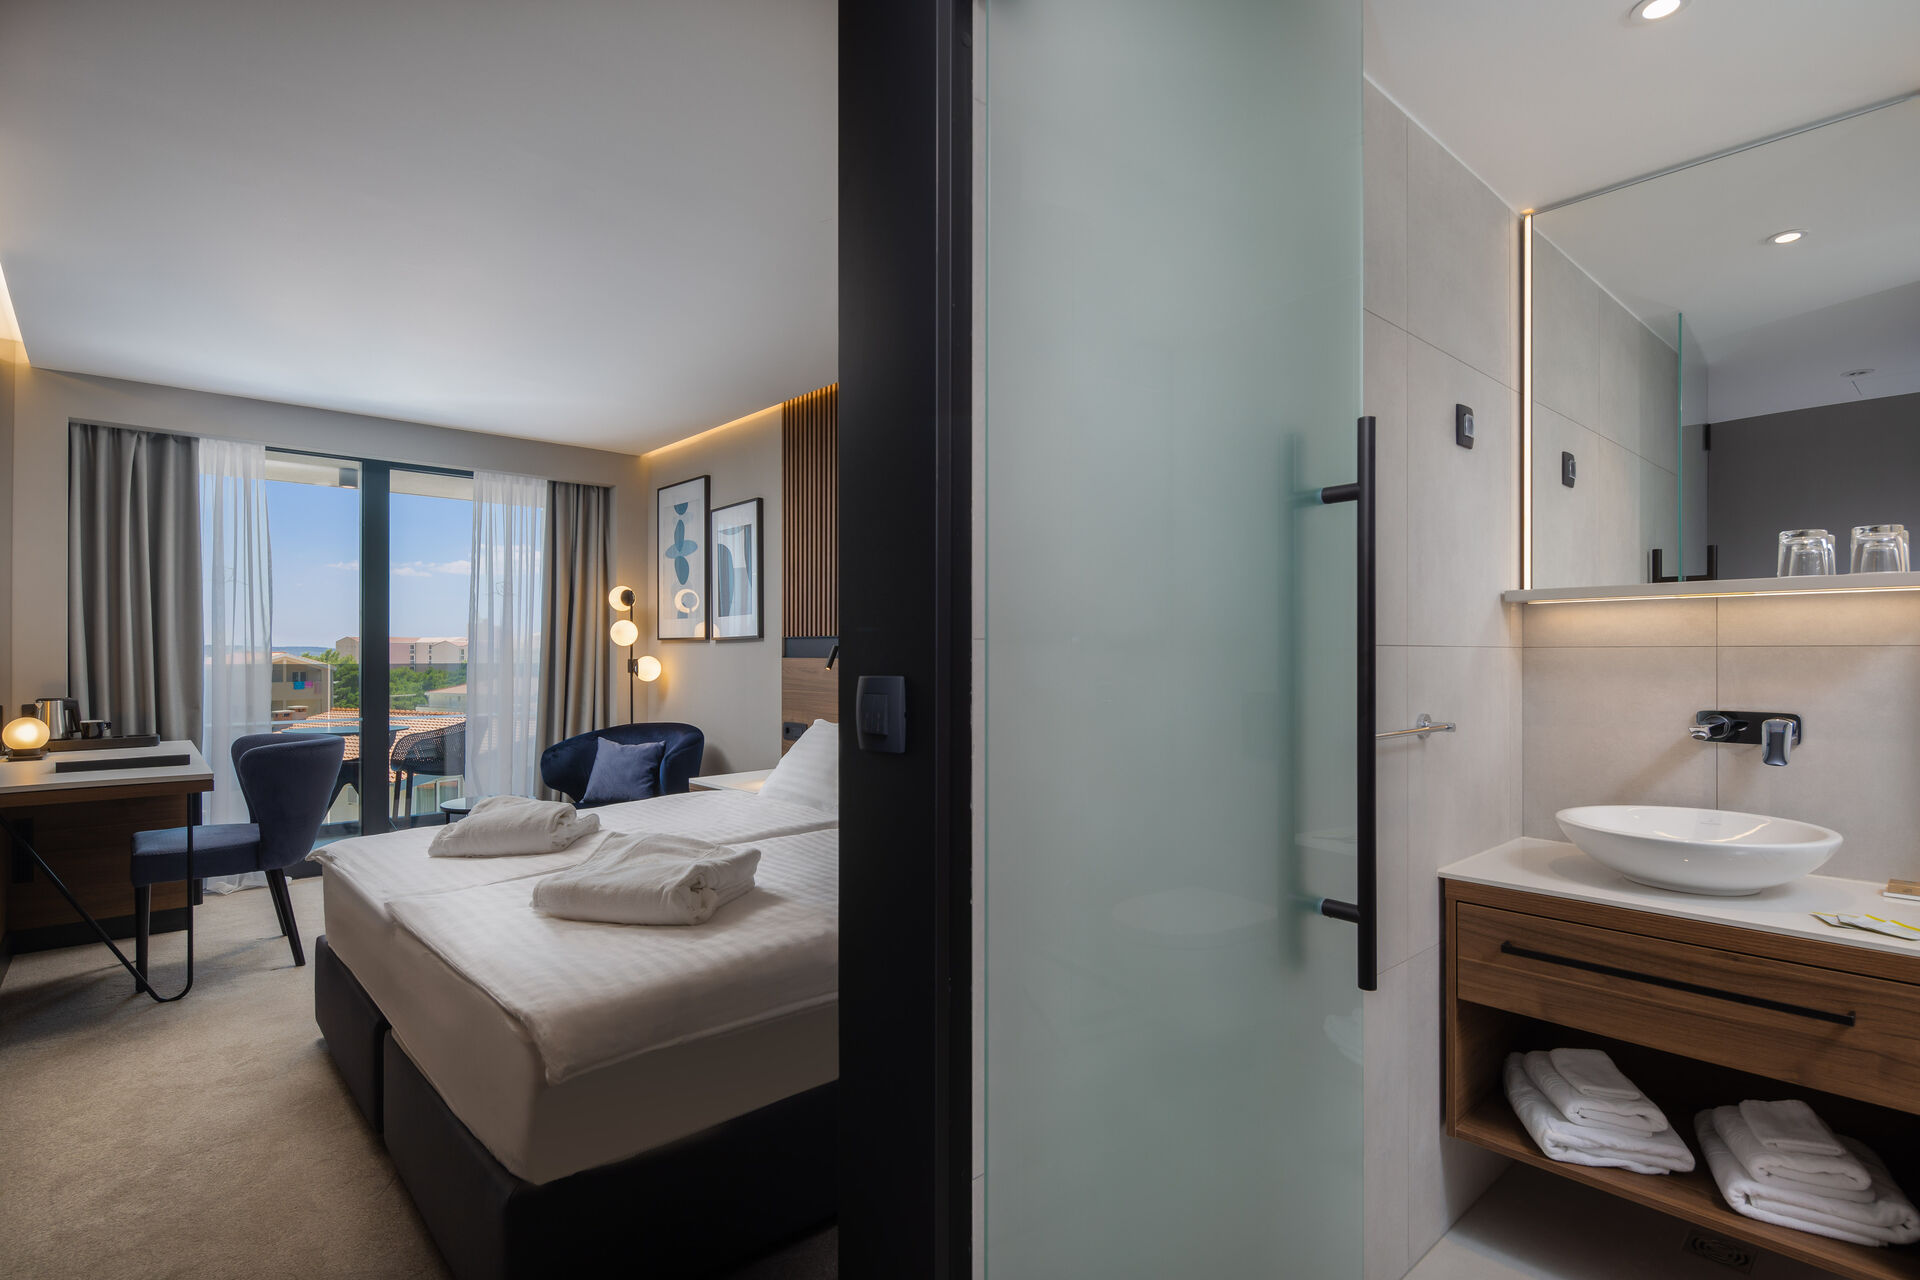 https://cms.satur.sk/data/imgs/tour_image/orig/double-room-with-balcony_hotel-noemia-2-1949949.jpg